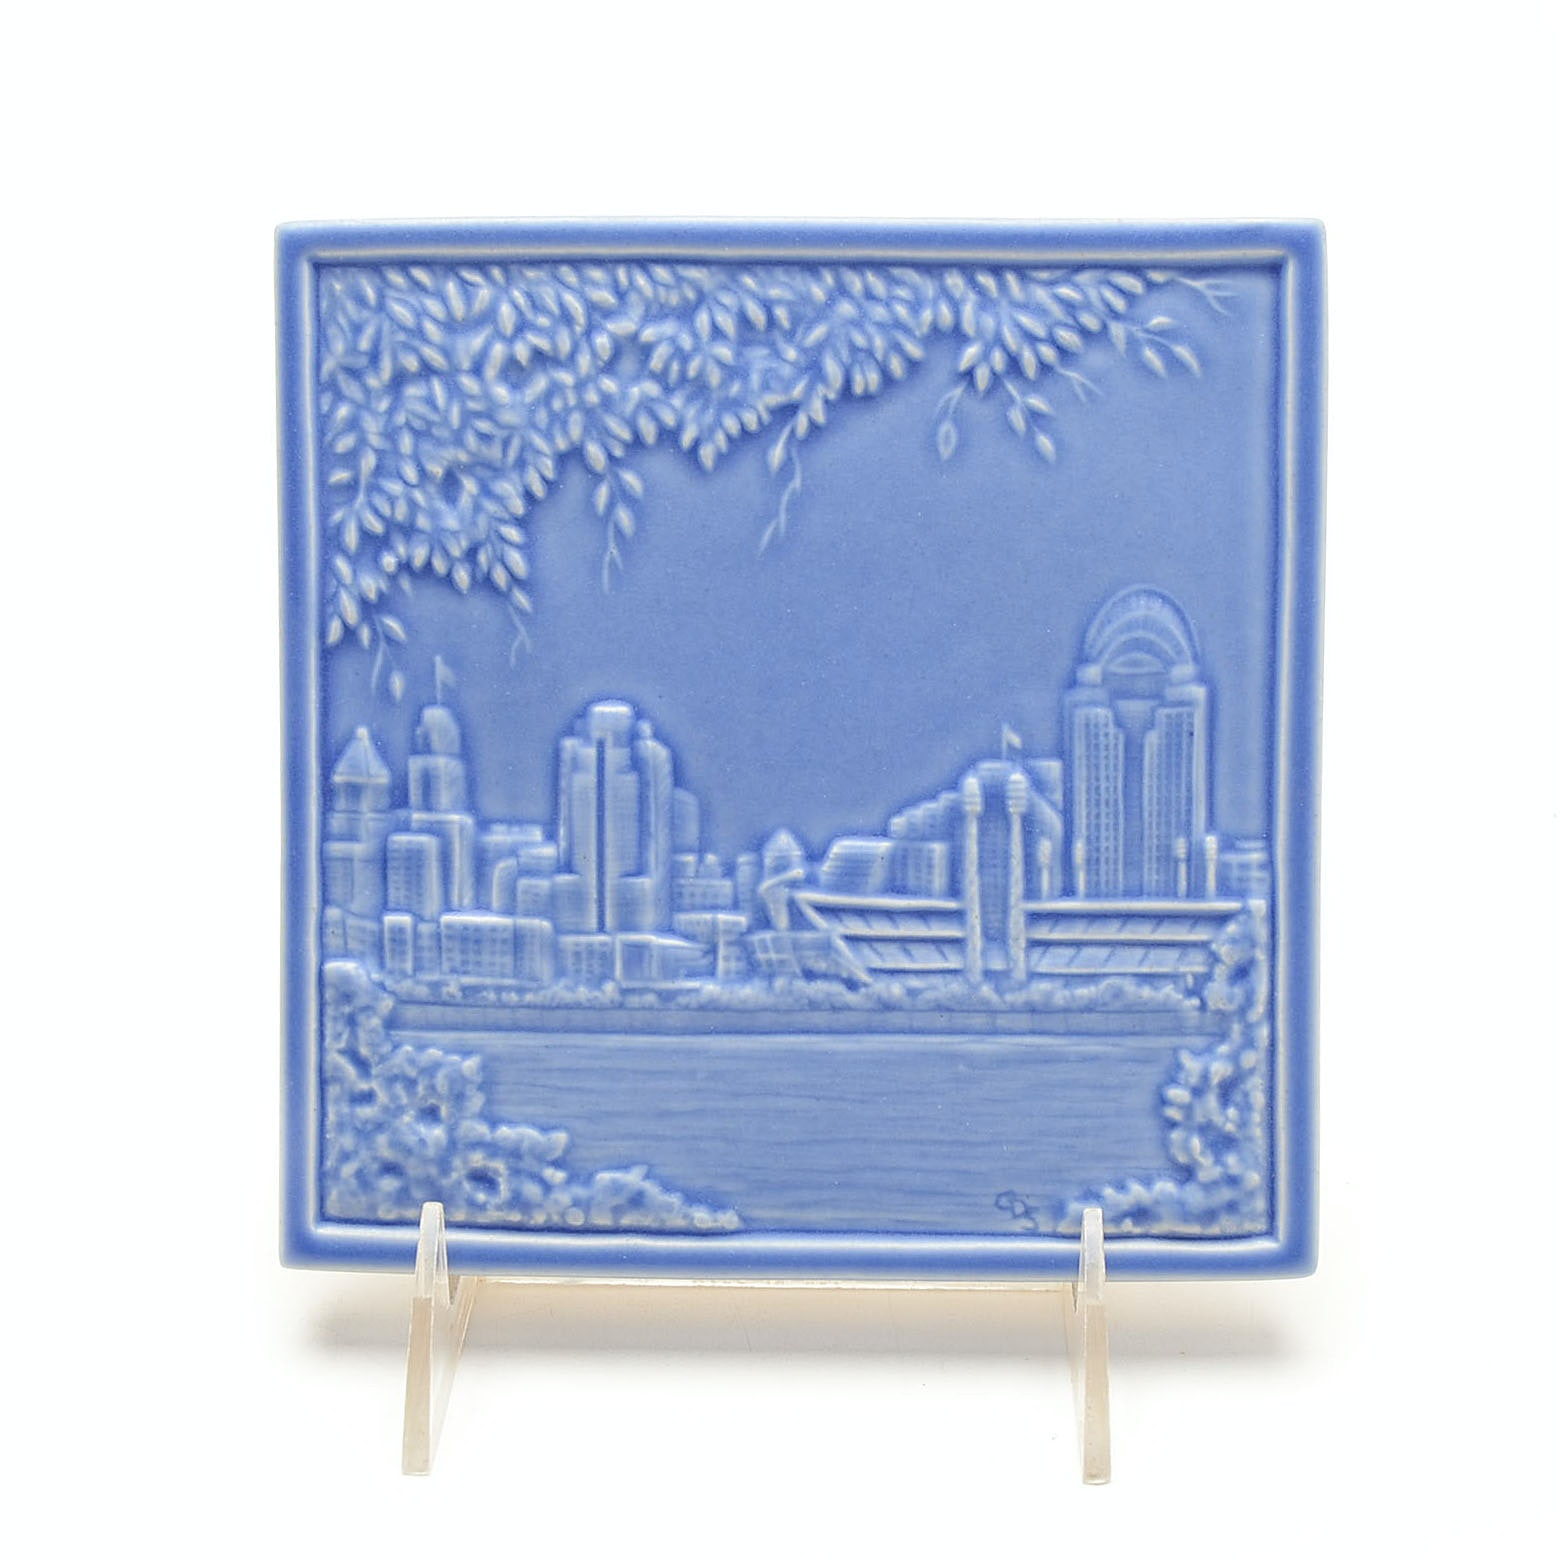 Rookwood Pottery First Edition Commemorative Art Tile